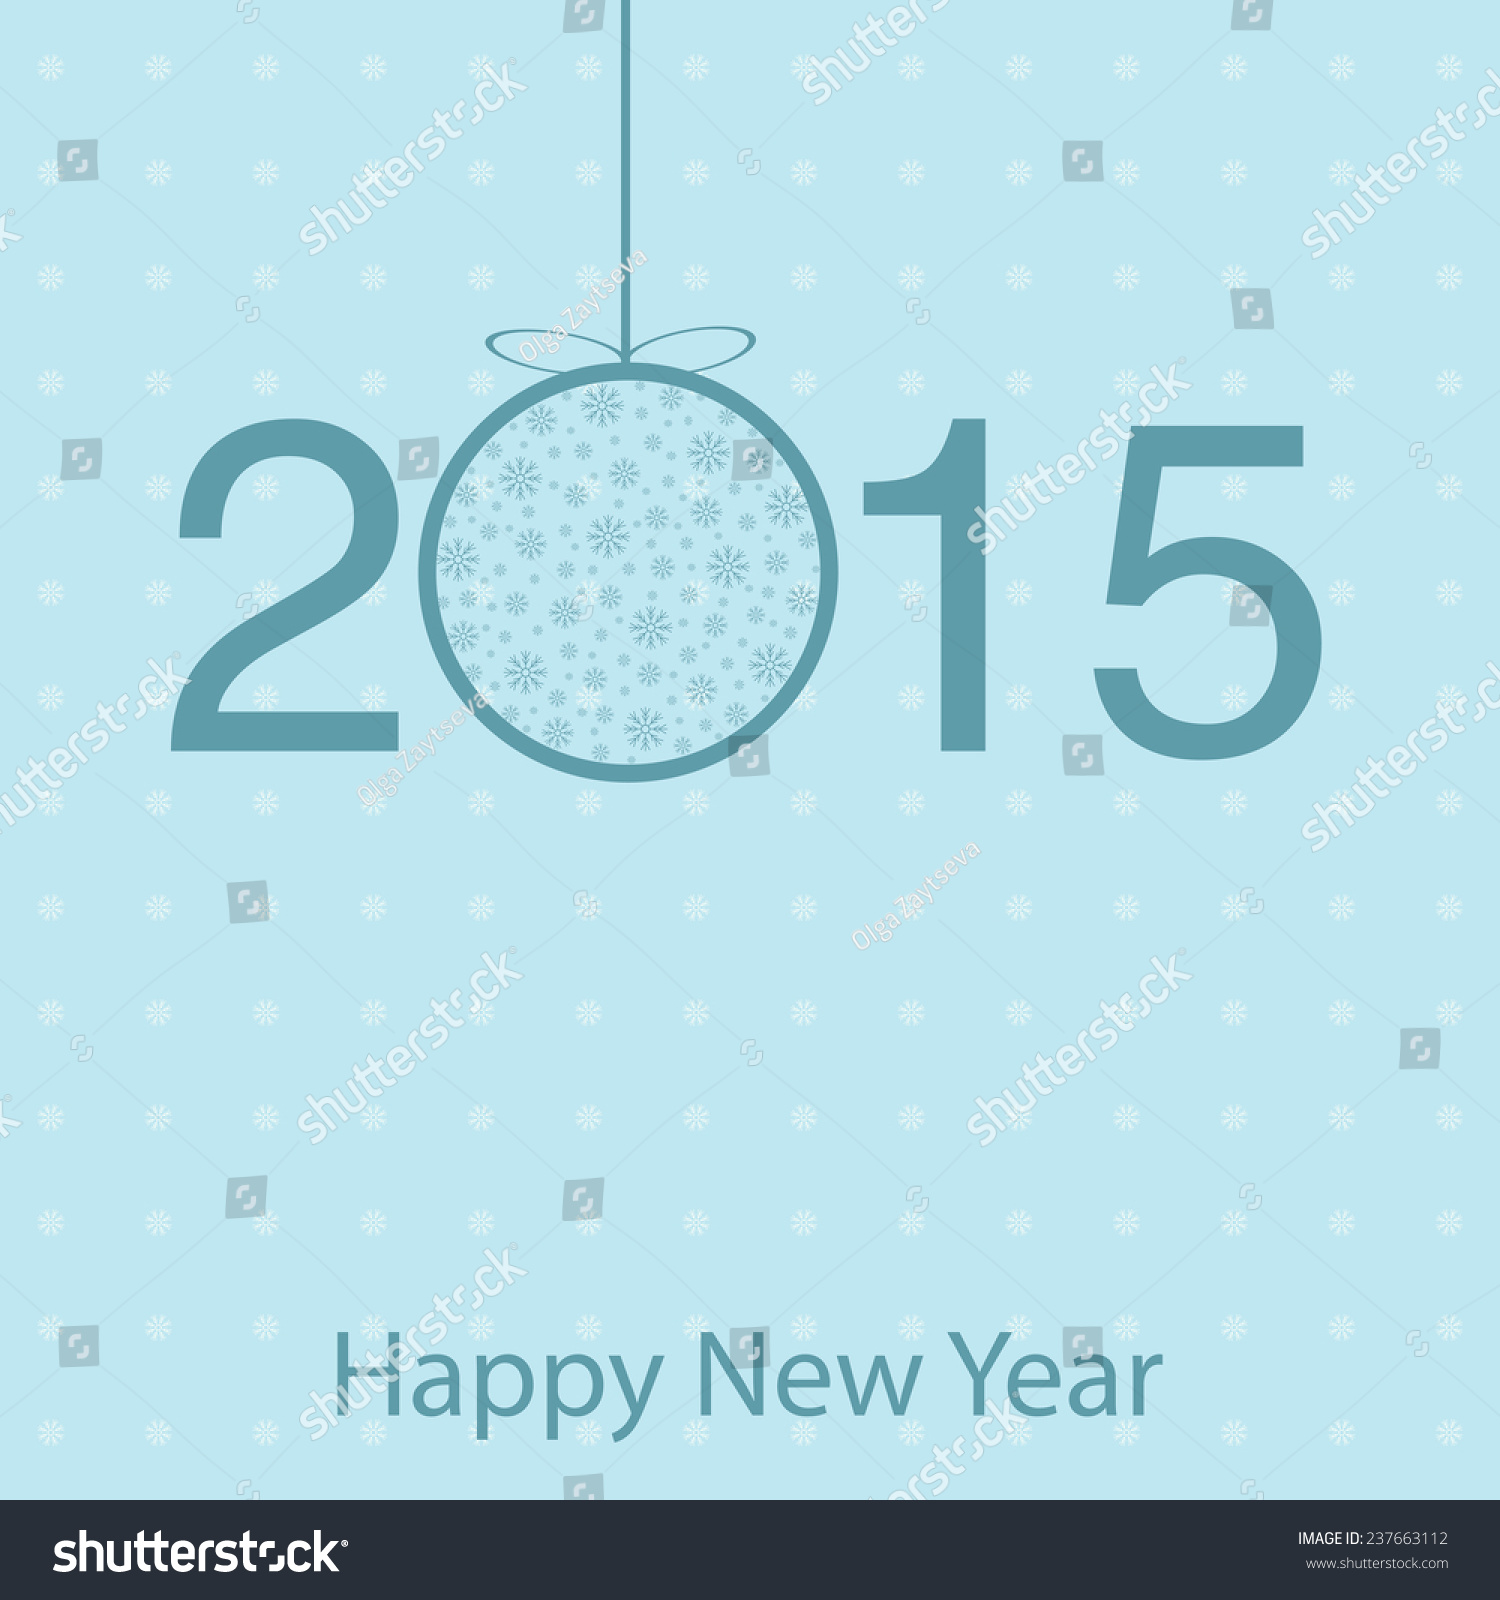 Template Greeting Cards 2015 New Year Stock Vector 237663112